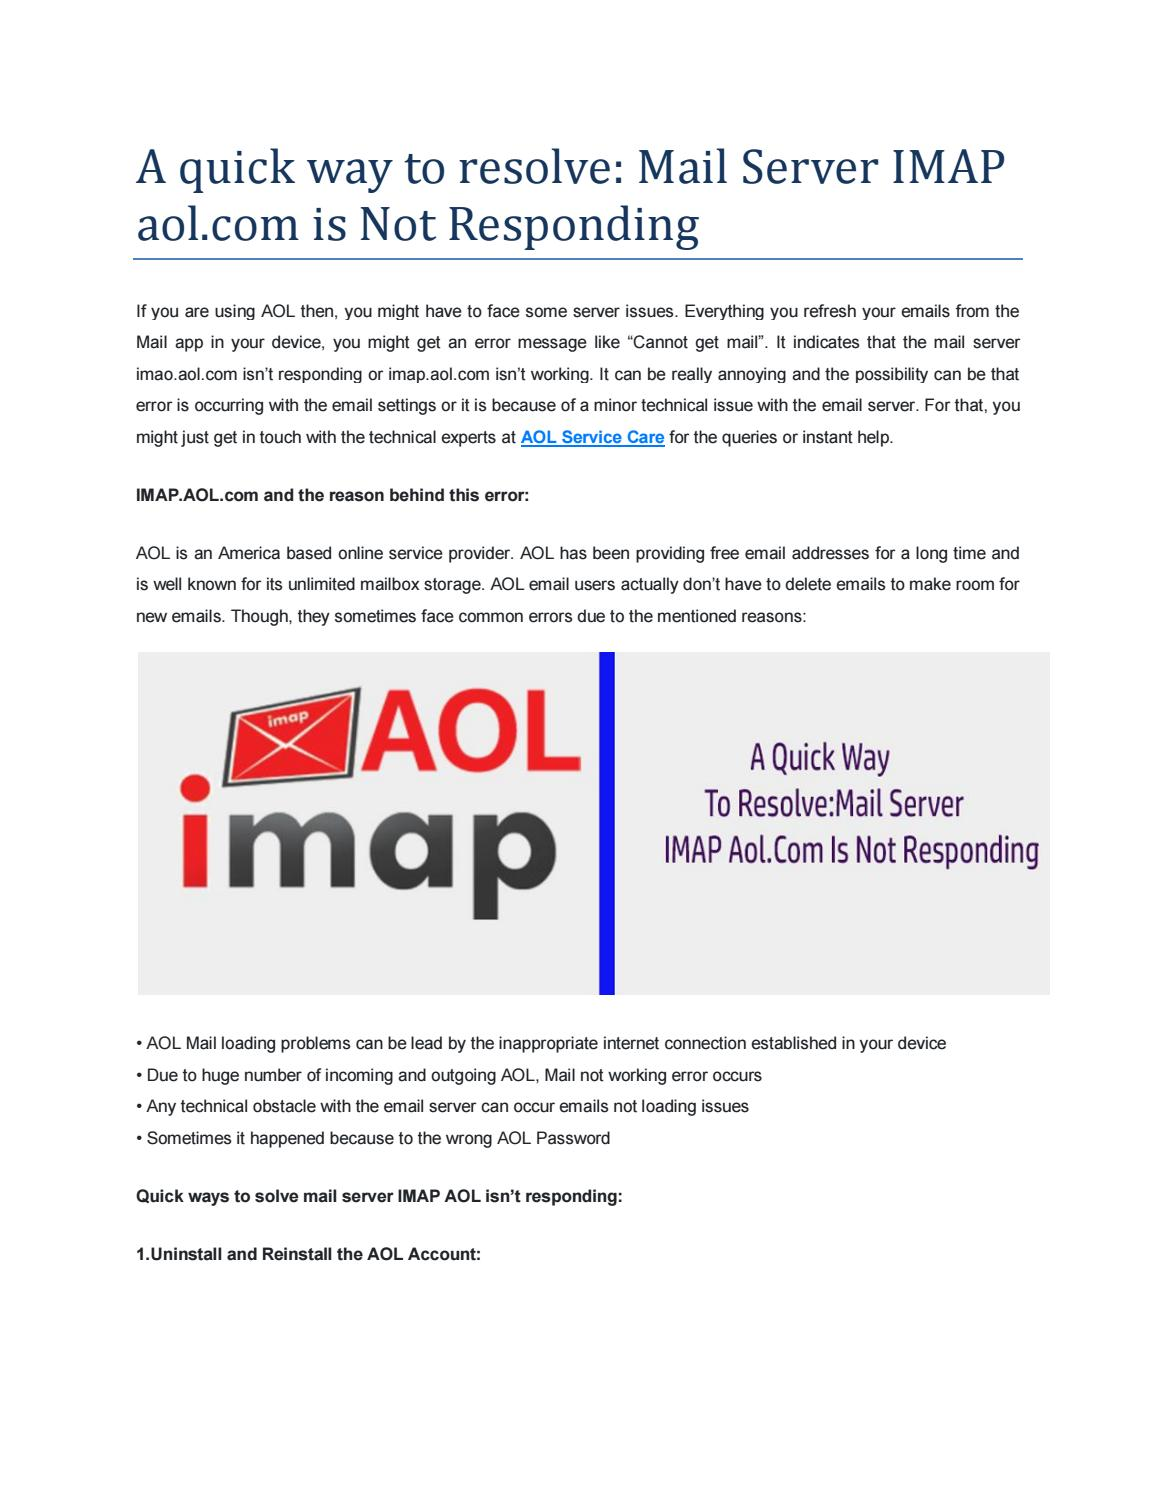 A Quick Way To Resolve Mail Server Imap Aol Com Is Not Responding By Thamosliam Issuu